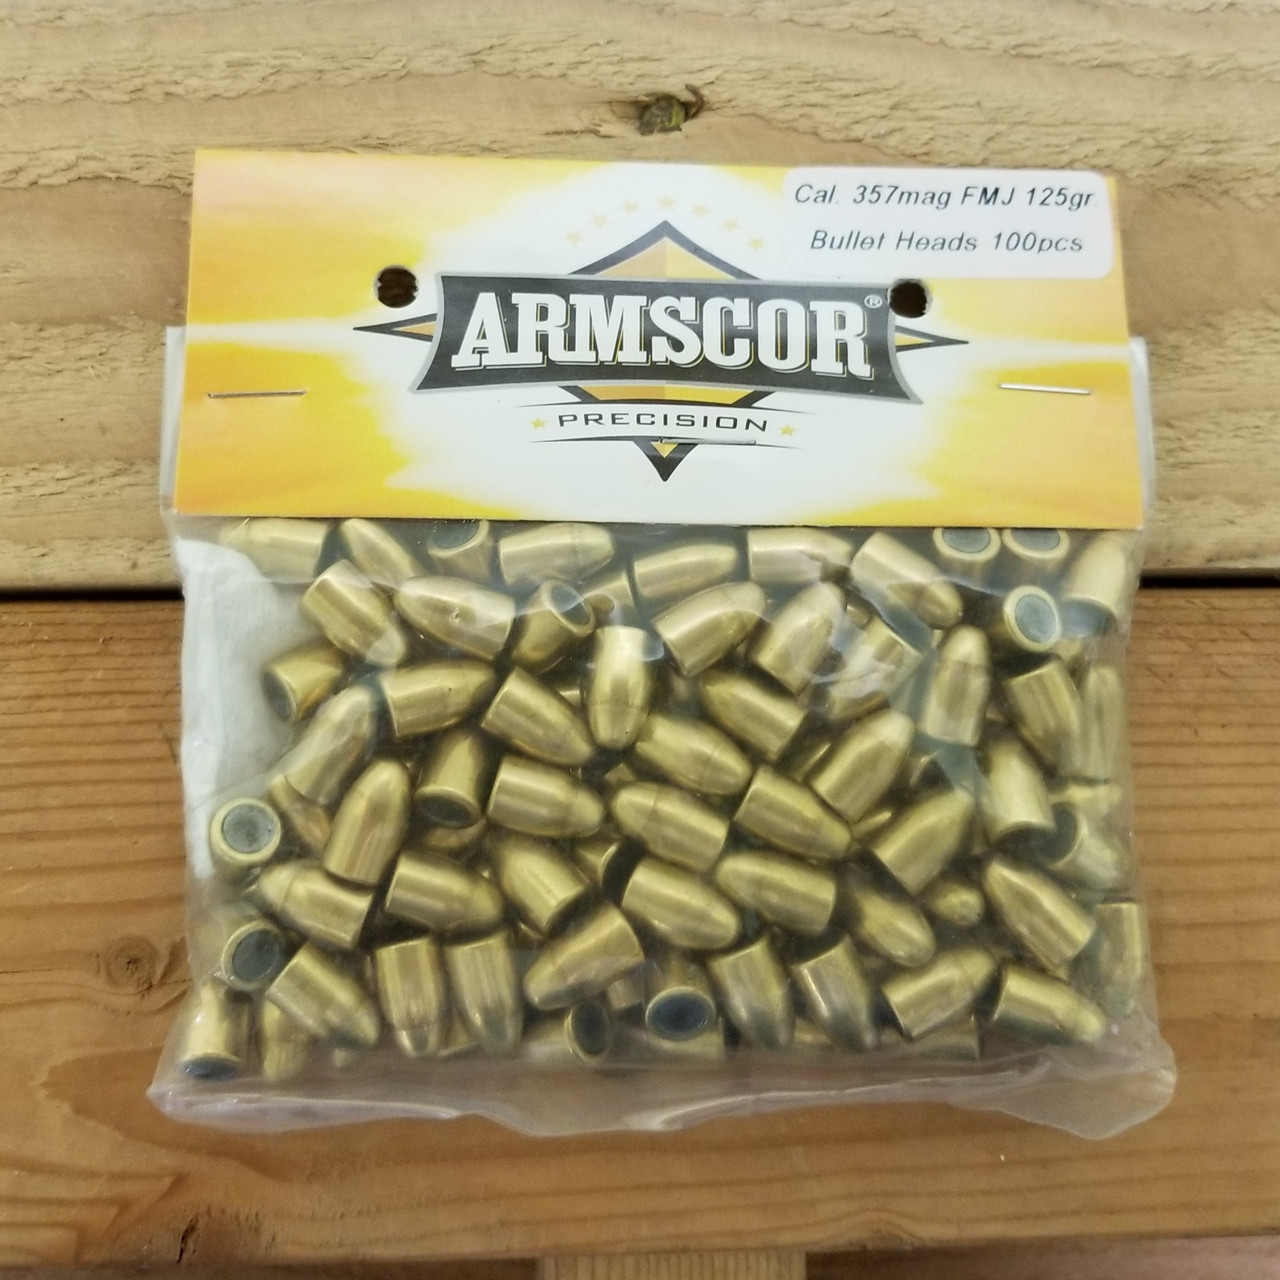 Armscor 357 Mag/ 358 Reloading Bullets 52320 125 Grain Full Metal Jacket  100 Pieces